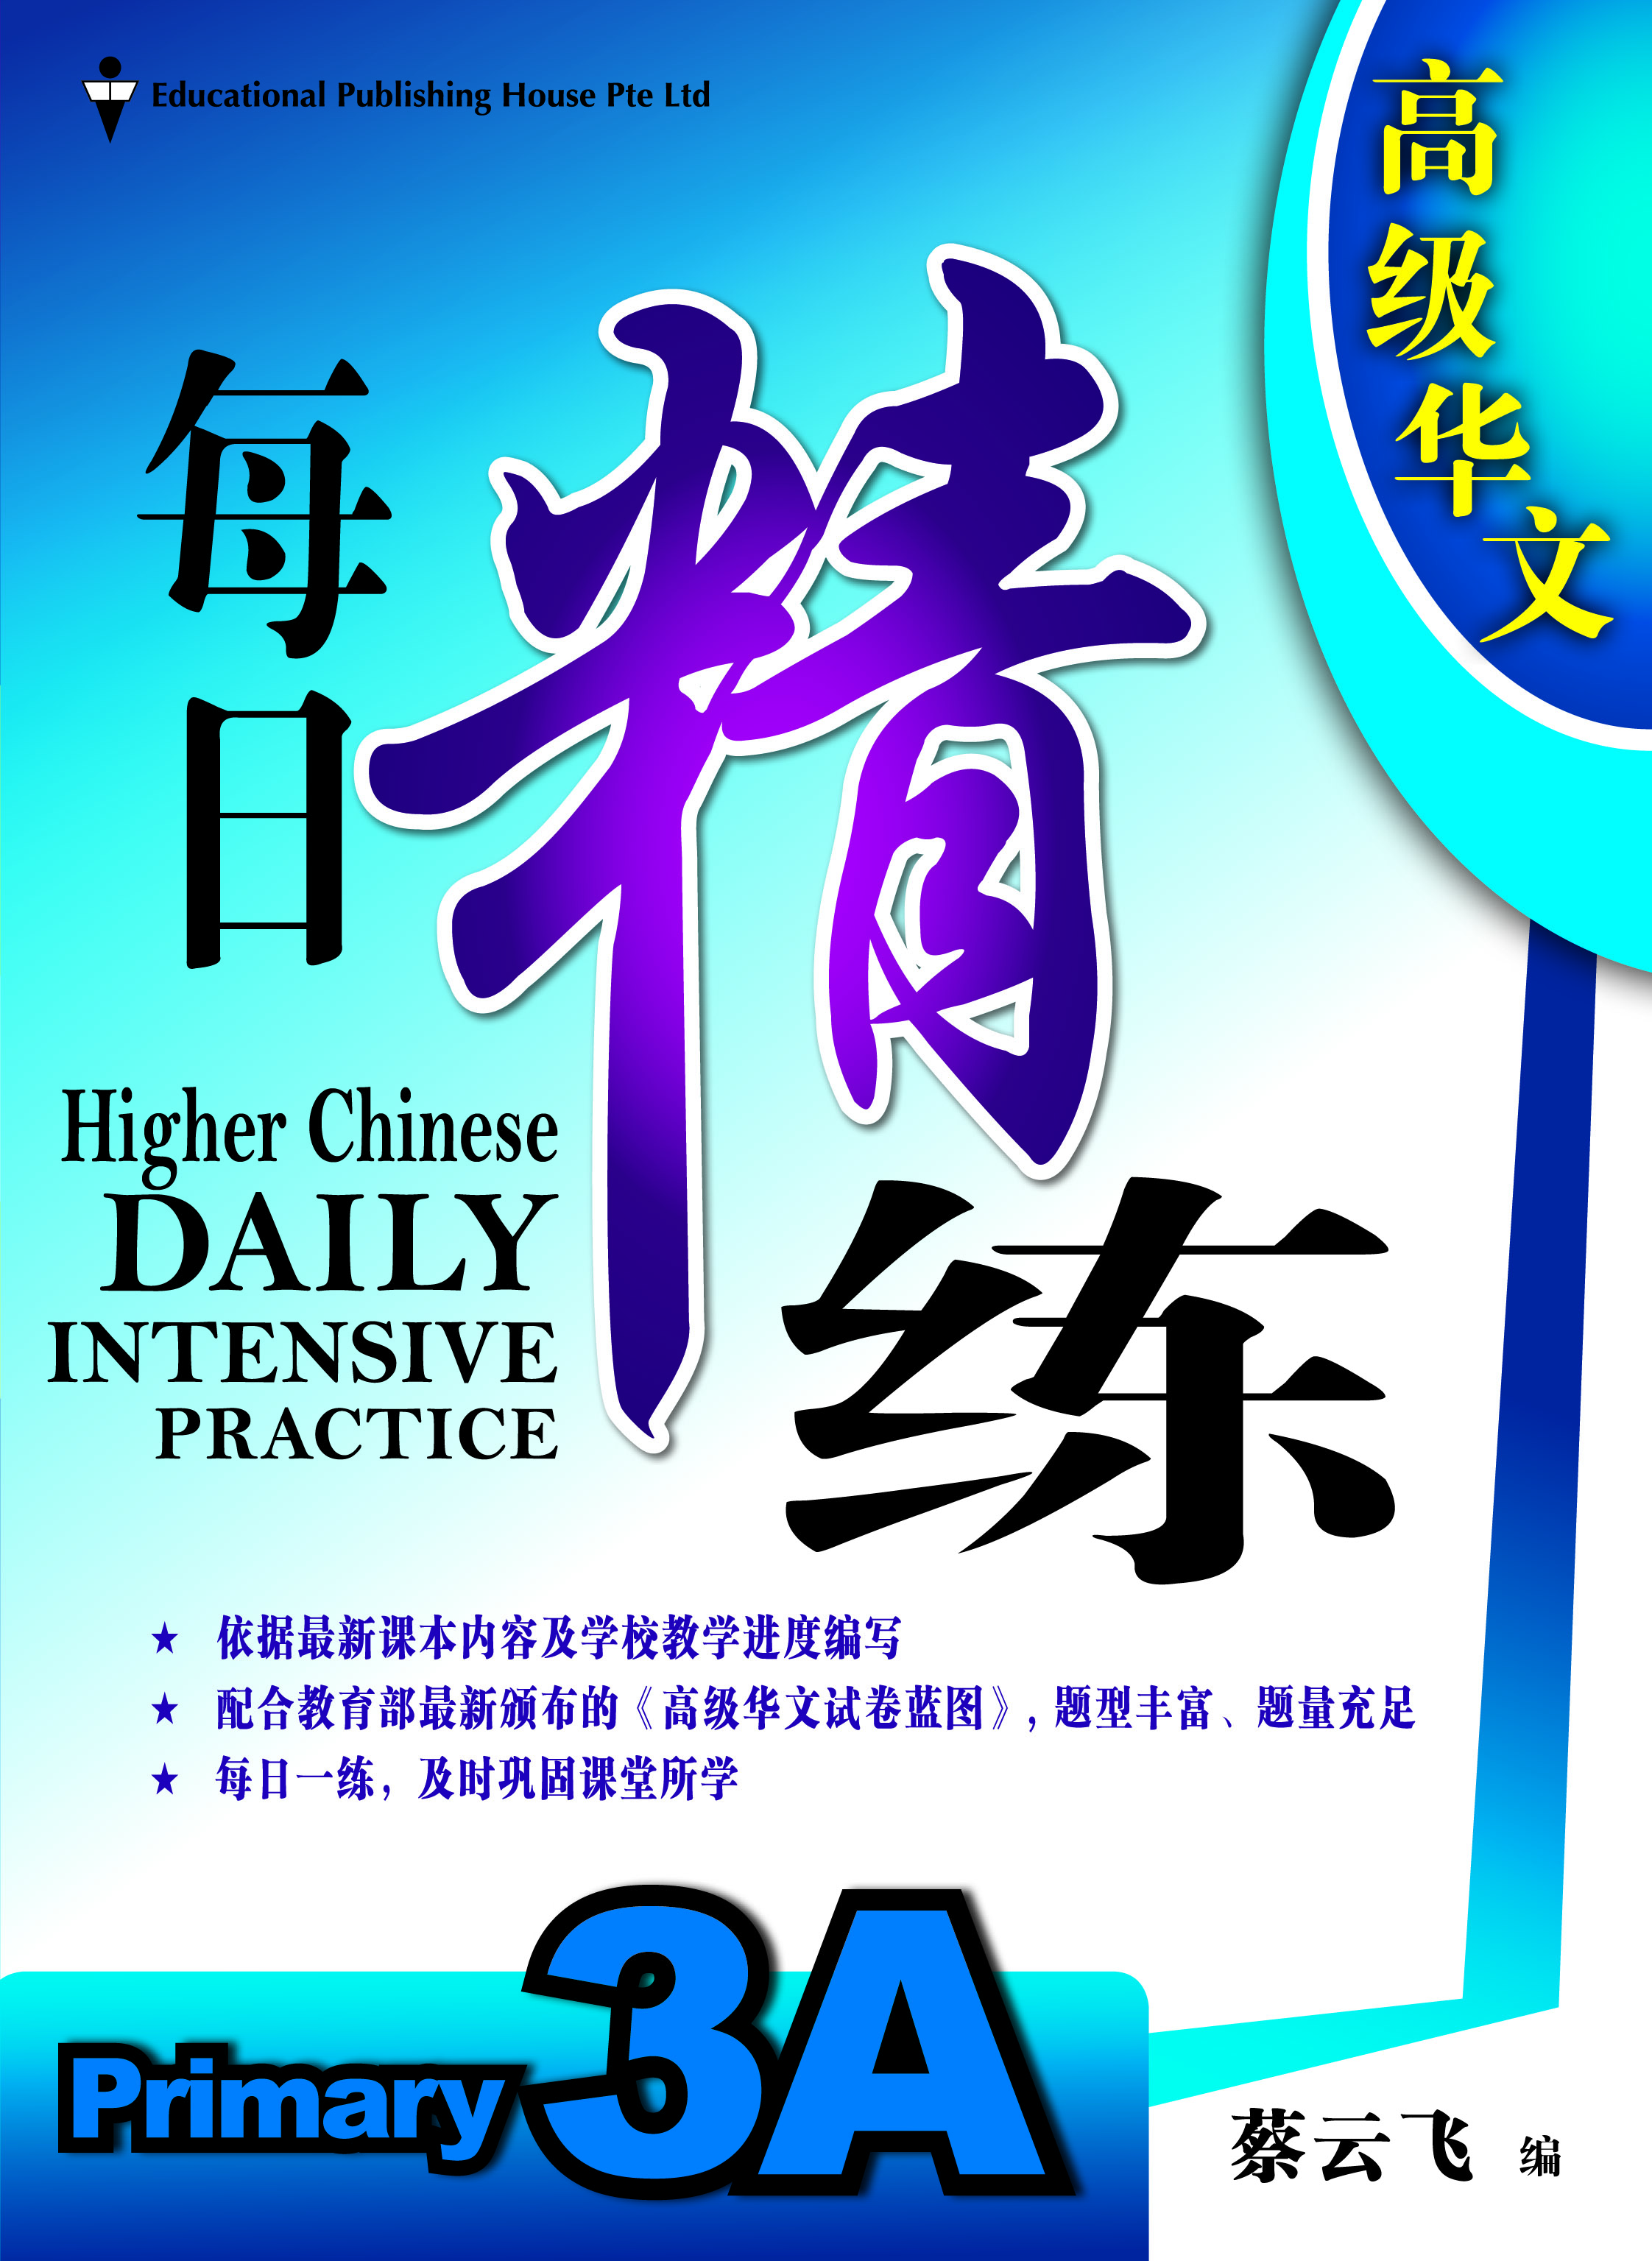 Higher Chinese Daily Intensive Practice 高级华文每日精练3A ...